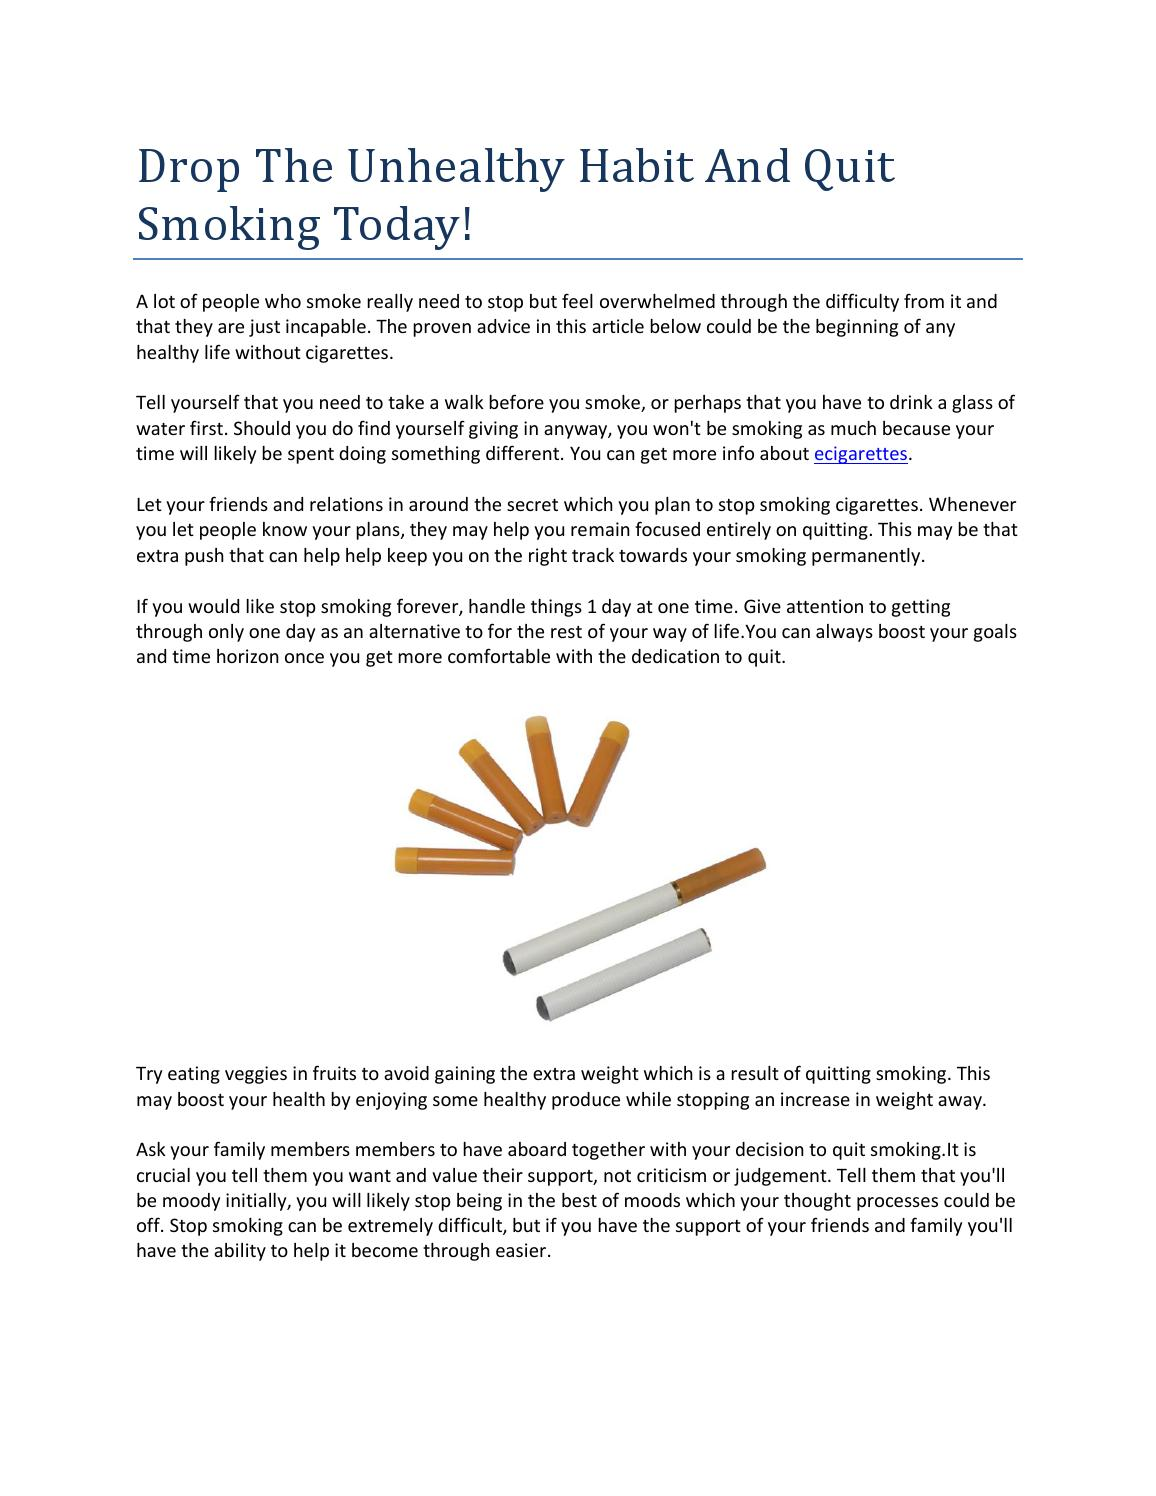 Just how to Quit Smoking Without Difficulty